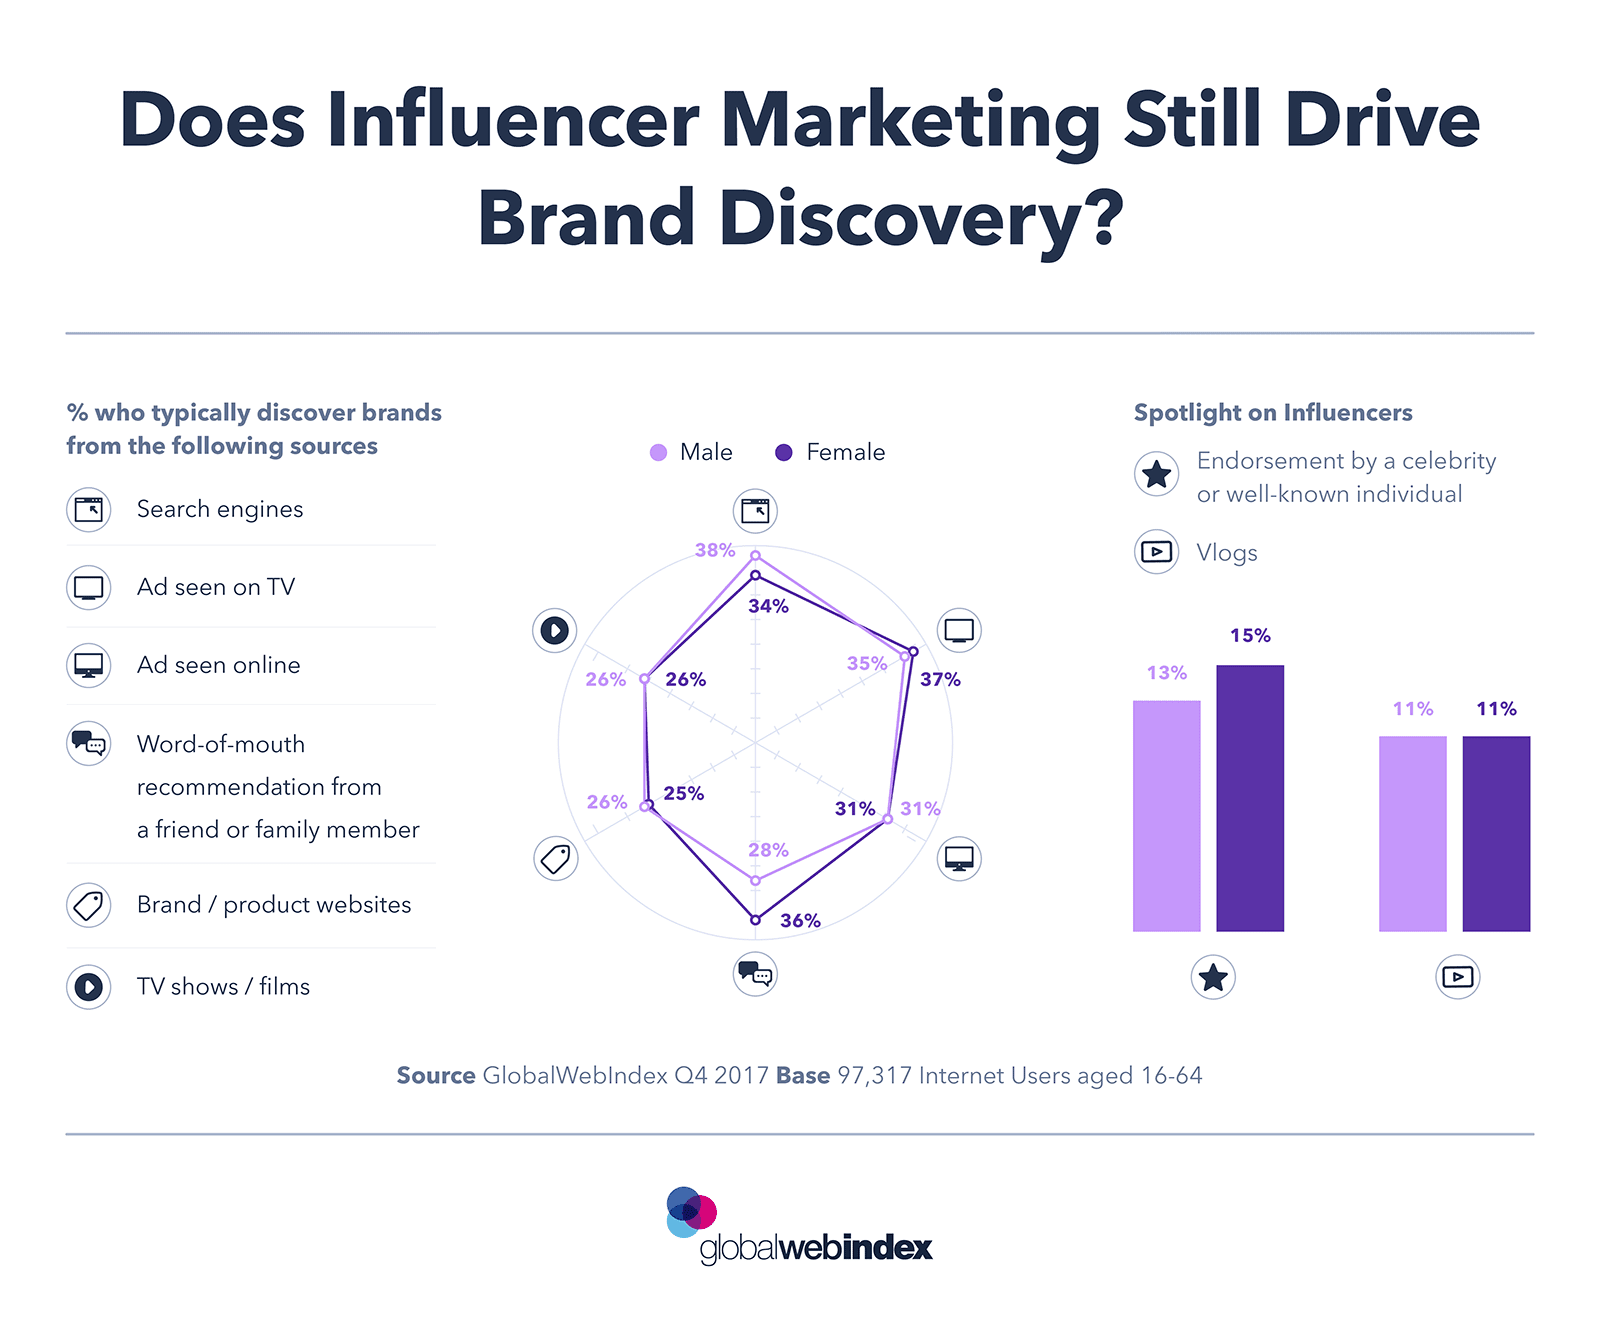 Does Influencer Marketing Still Drive Brand Discovery? - #infographic